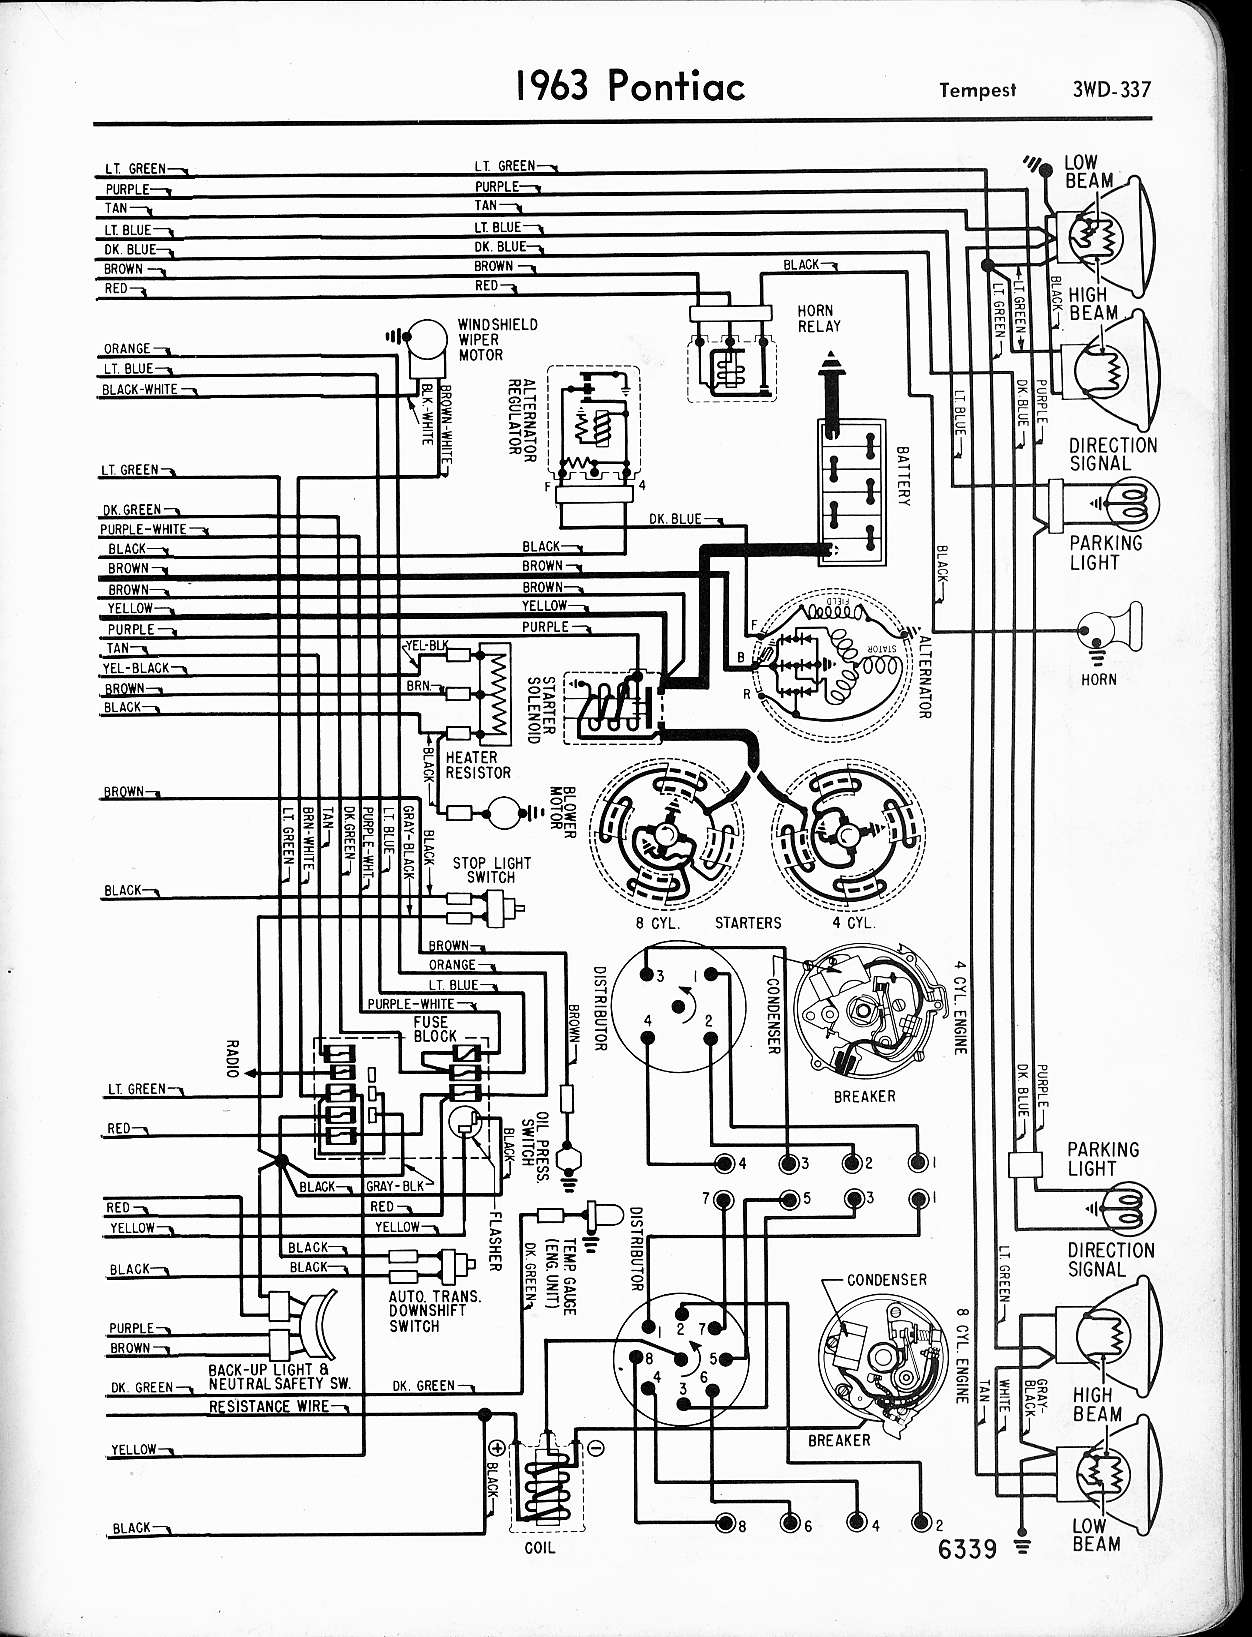 wallace racing wiring diagrams rh wallaceracing com 2006 Pontiac Grand Prix Radio Wiring Diagram 2001 Pontiac Grand Prix Wiring-Diagram